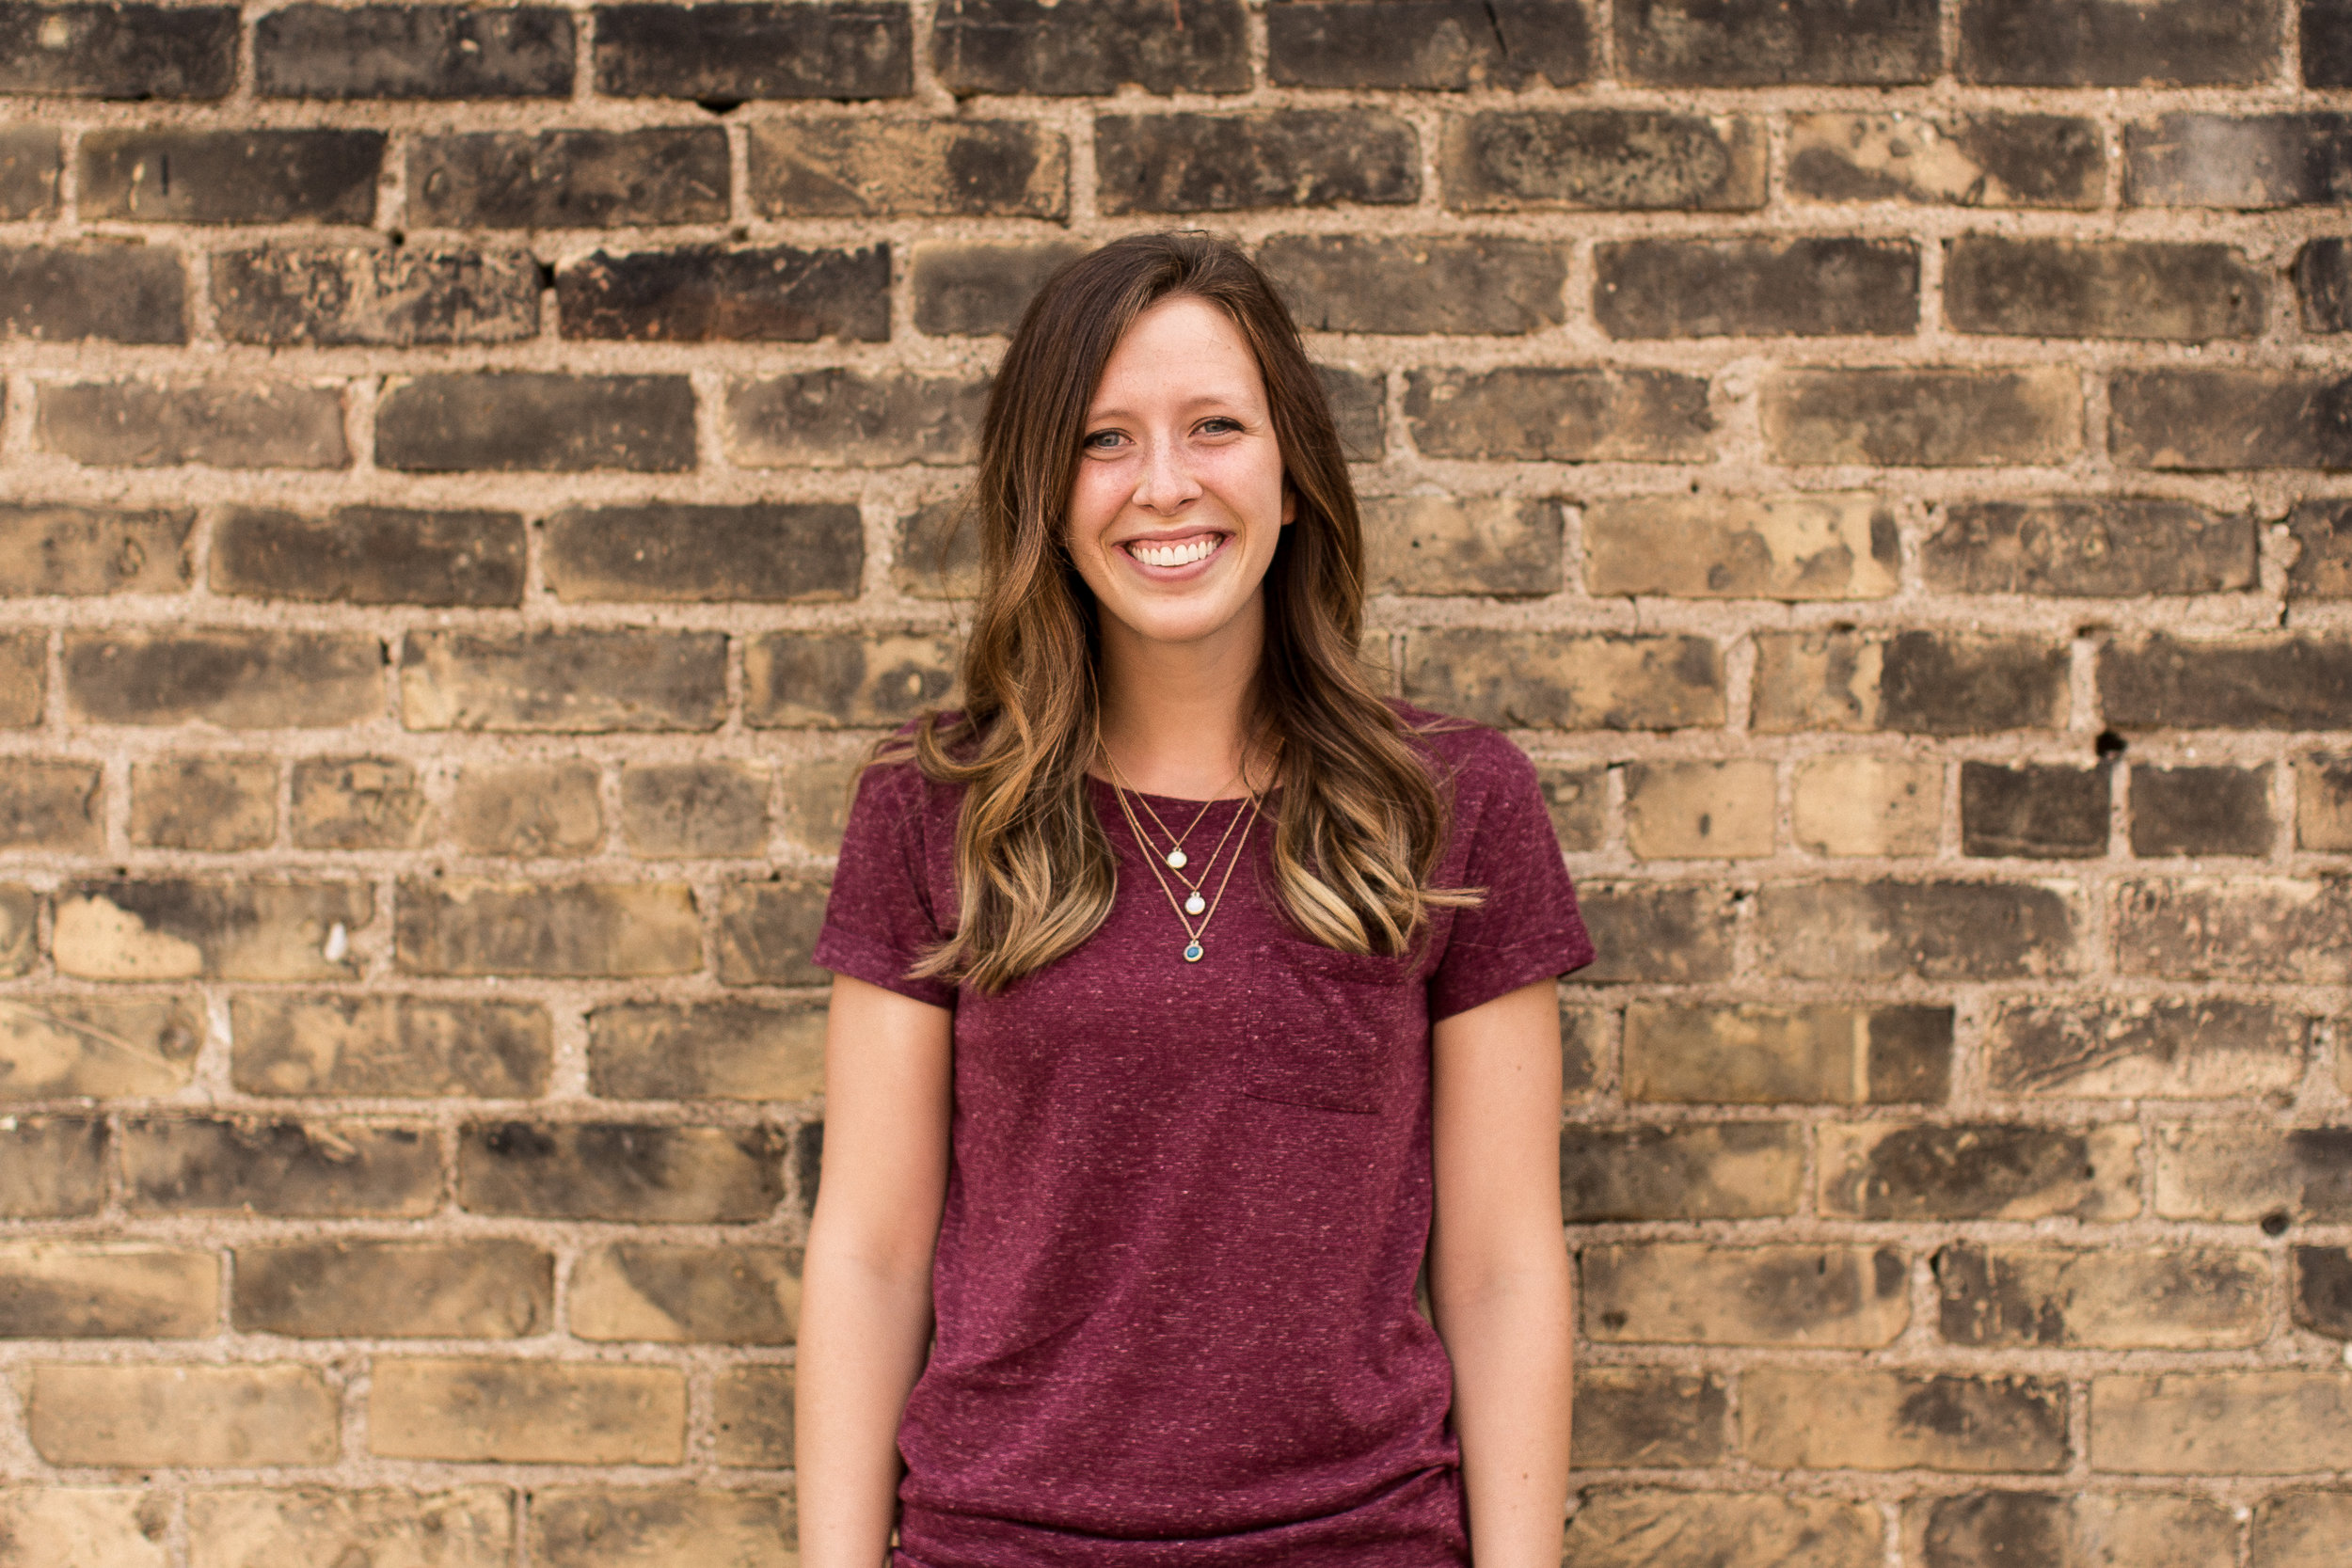 Kaylee Hunting - MINISTRY LEADERkaylee.hunting@saltcitychurch.comUndergraduate Degree: Elementary Education, MA in Theological StudiesFavorite Food: Ice CreamTop 2 Books: Unbroken by Laura Hillenbrand, The Hiding Place by Corrie Ten BoomFor fun: Camping, backpacking, and making yummy food